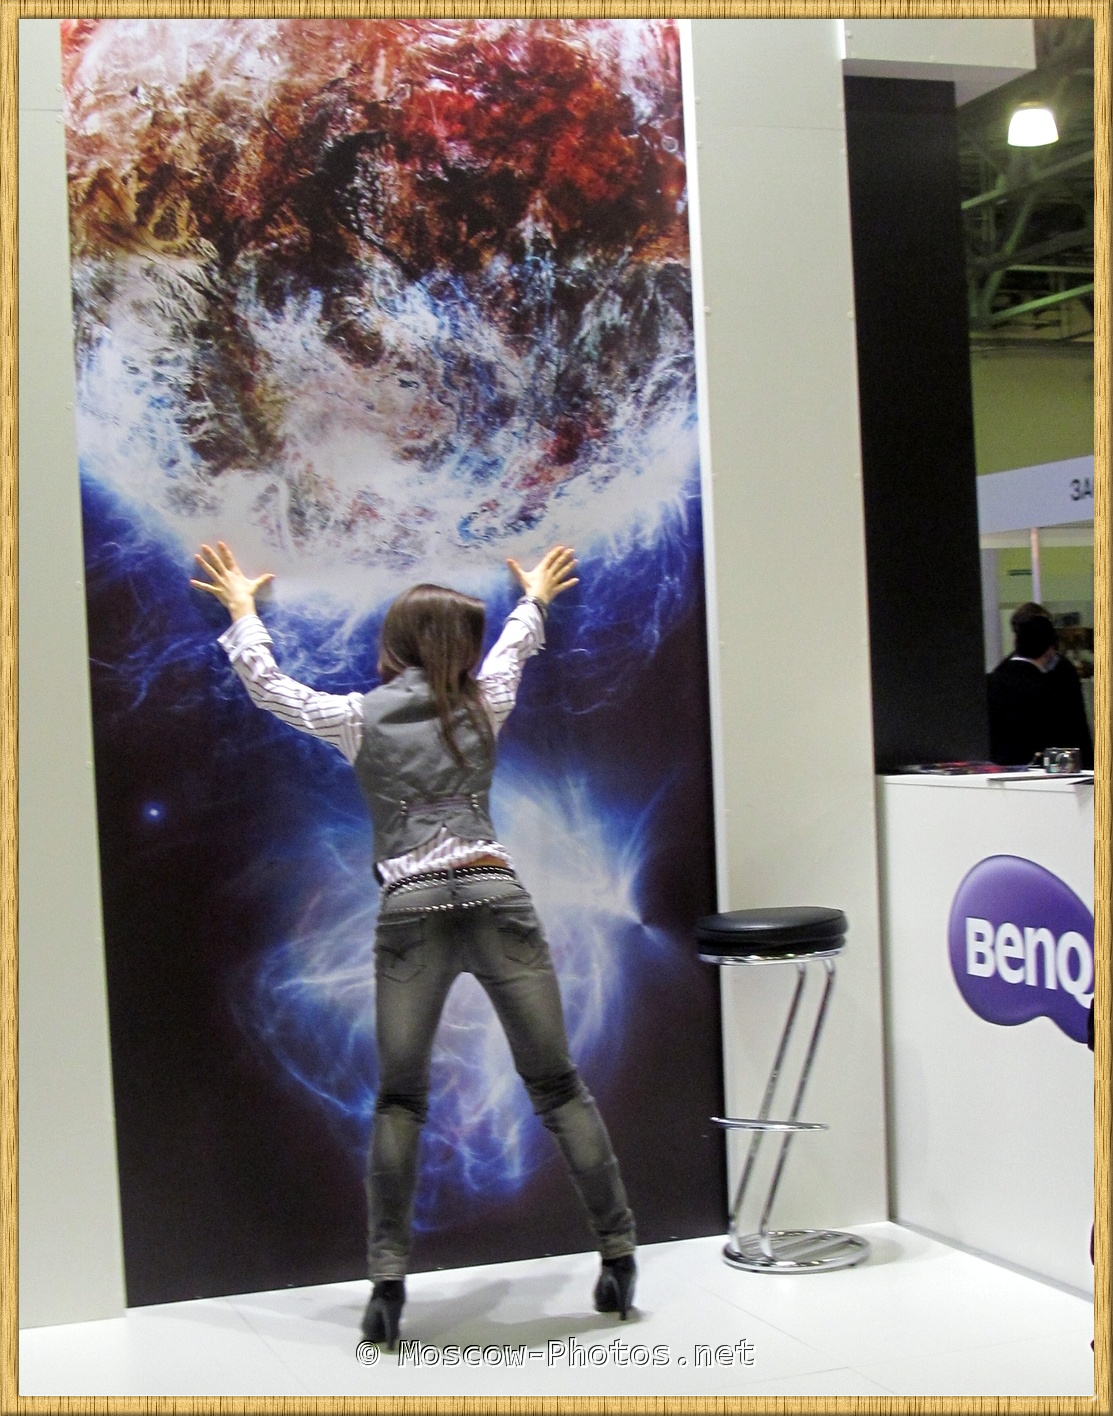 BENQ Girl posing on Photoforum 2012